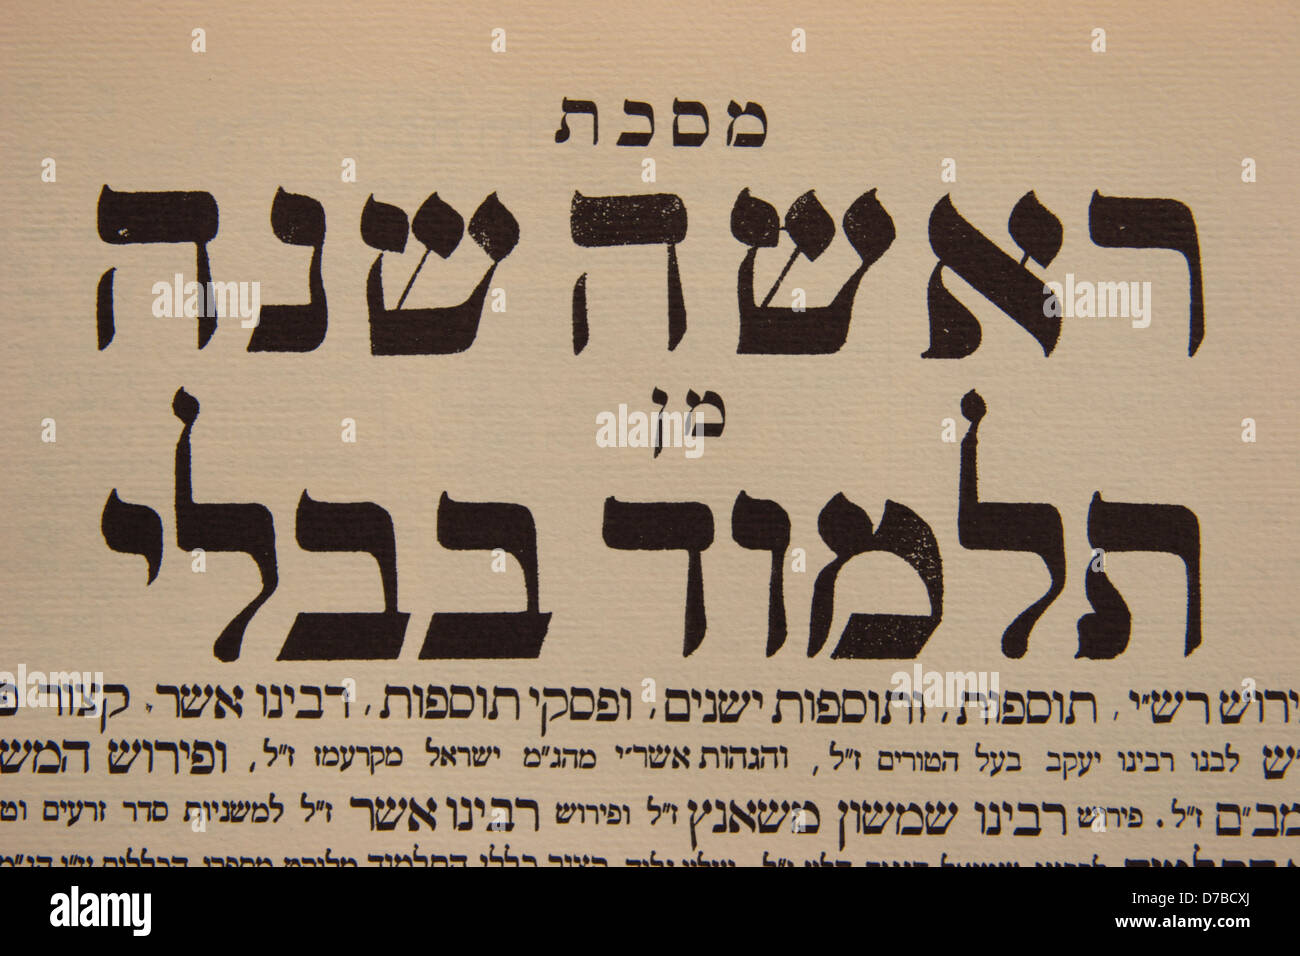 new year page at the talmud bavli - Stock Image